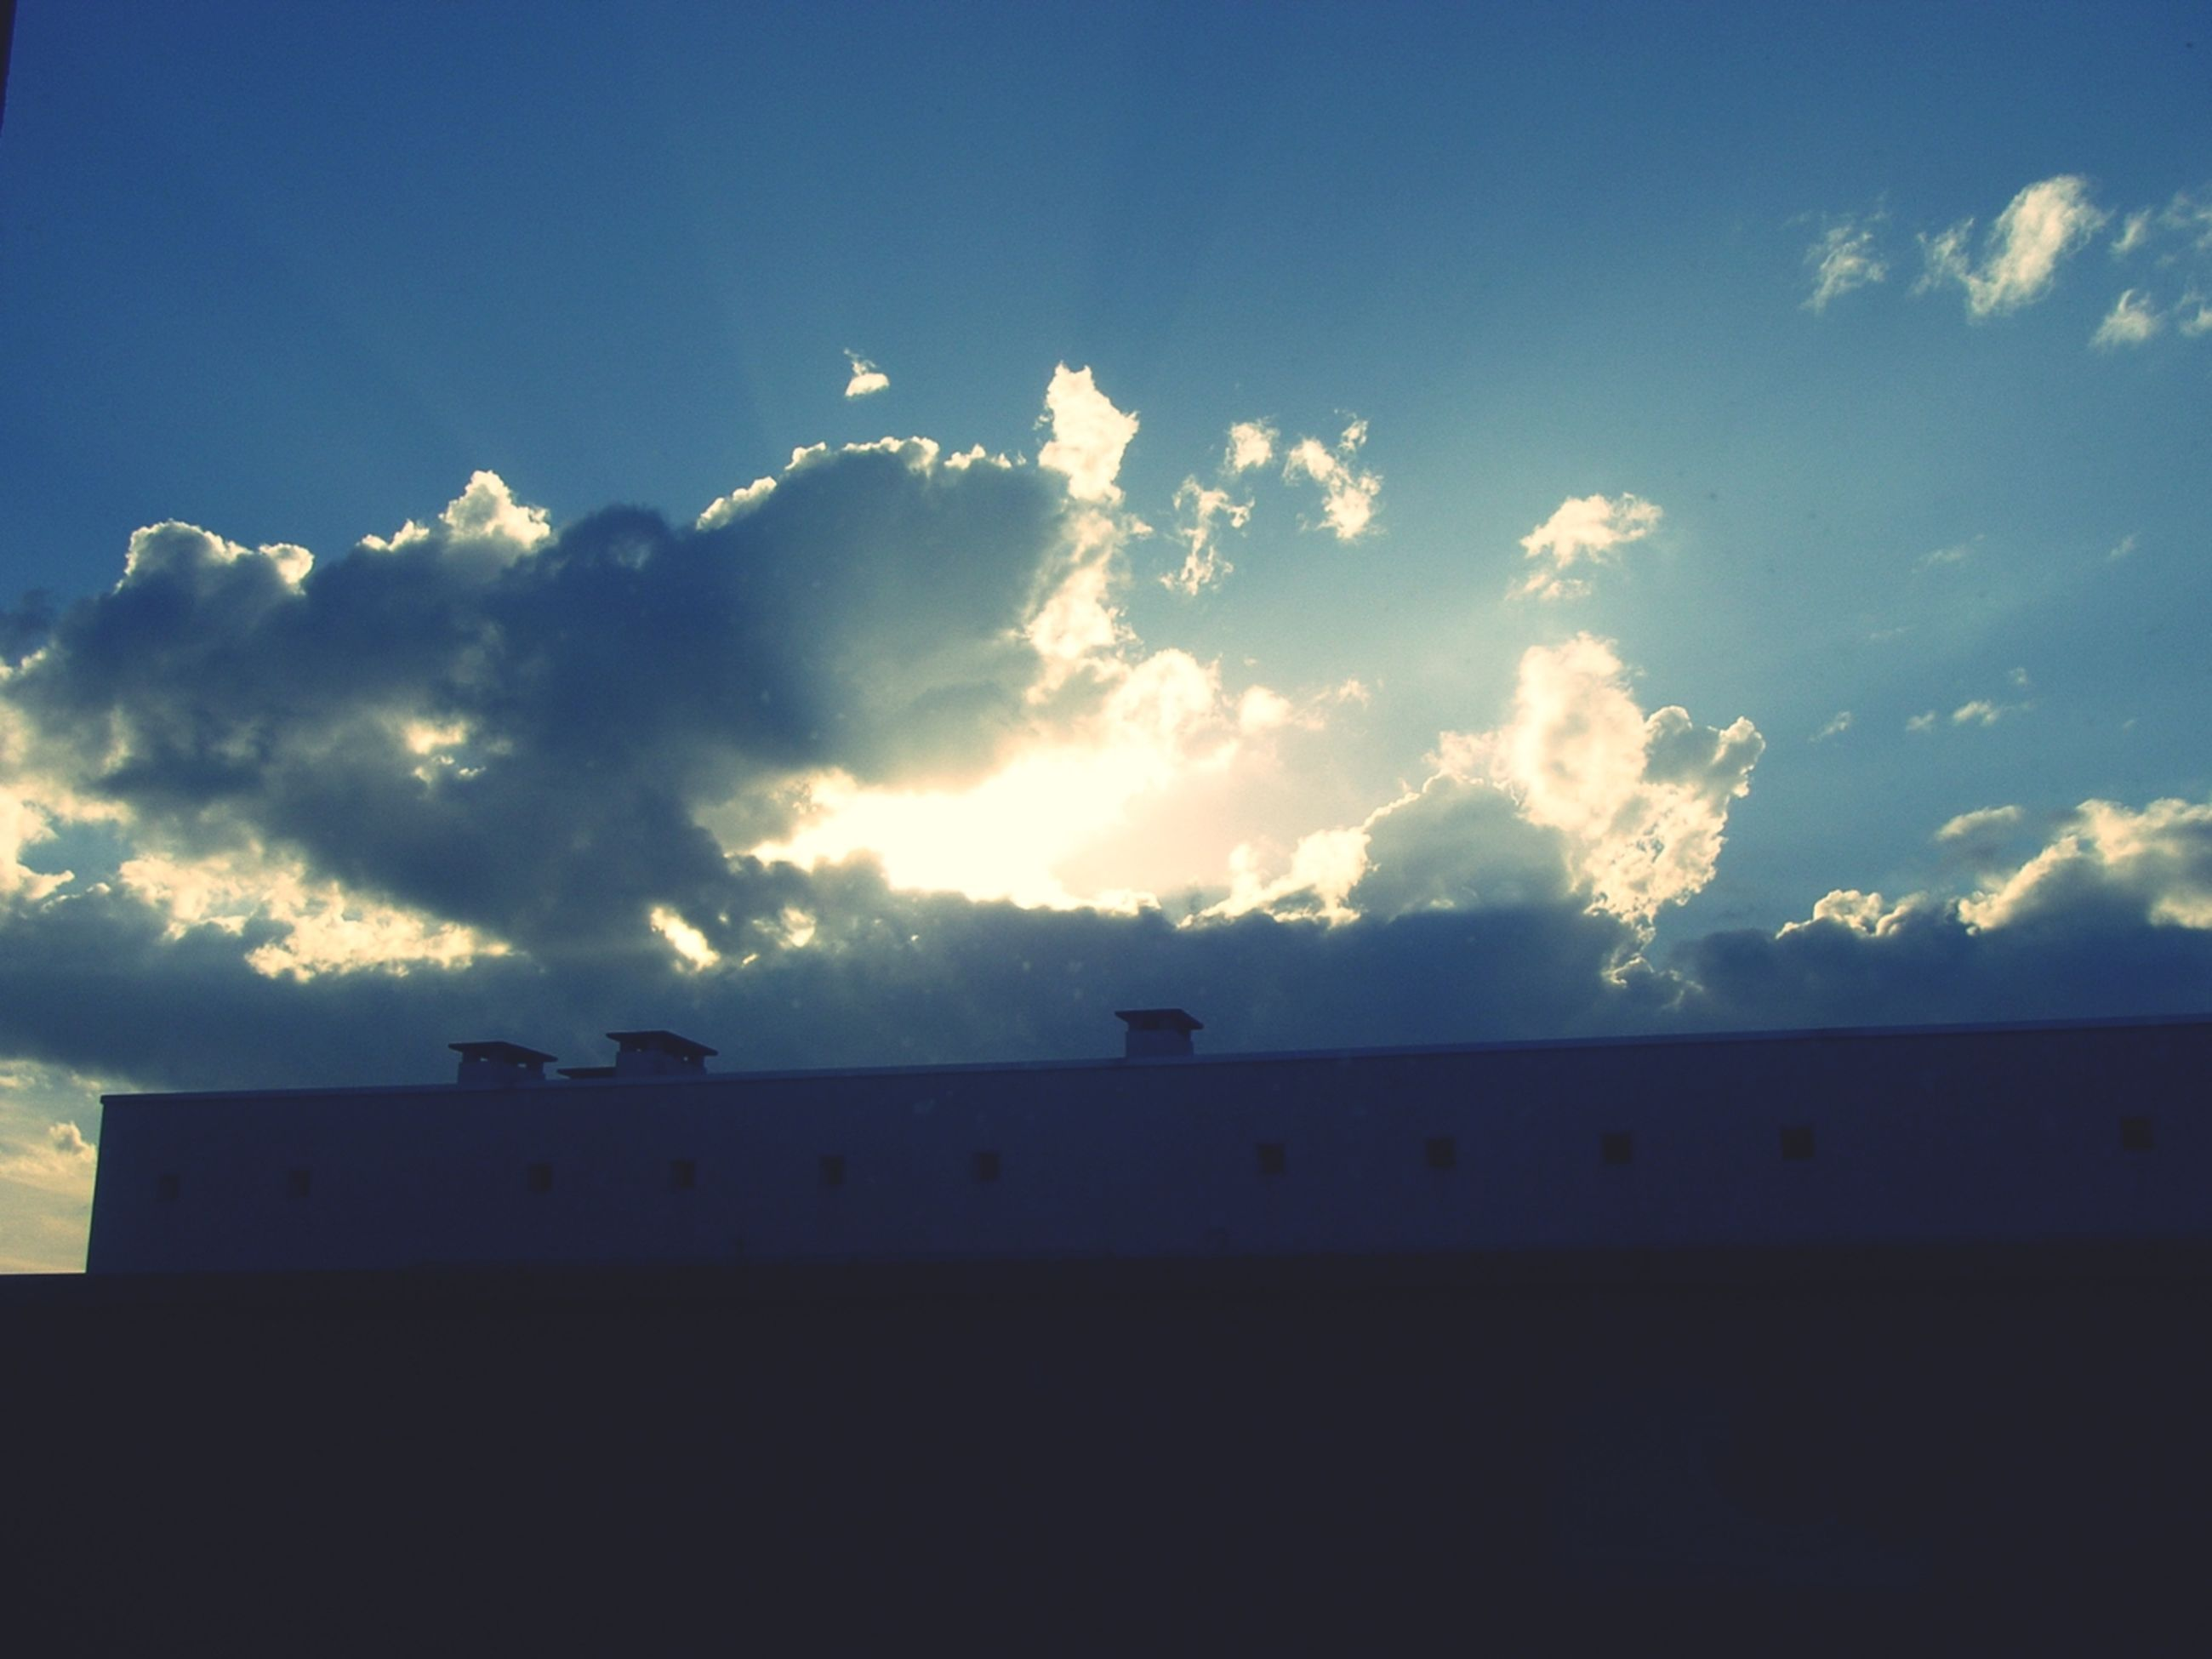 sky, silhouette, sunset, cloud - sky, blue, cloud, built structure, beauty in nature, scenics, sunlight, nature, building exterior, copy space, tranquility, tranquil scene, architecture, low angle view, house, sun, outdoors